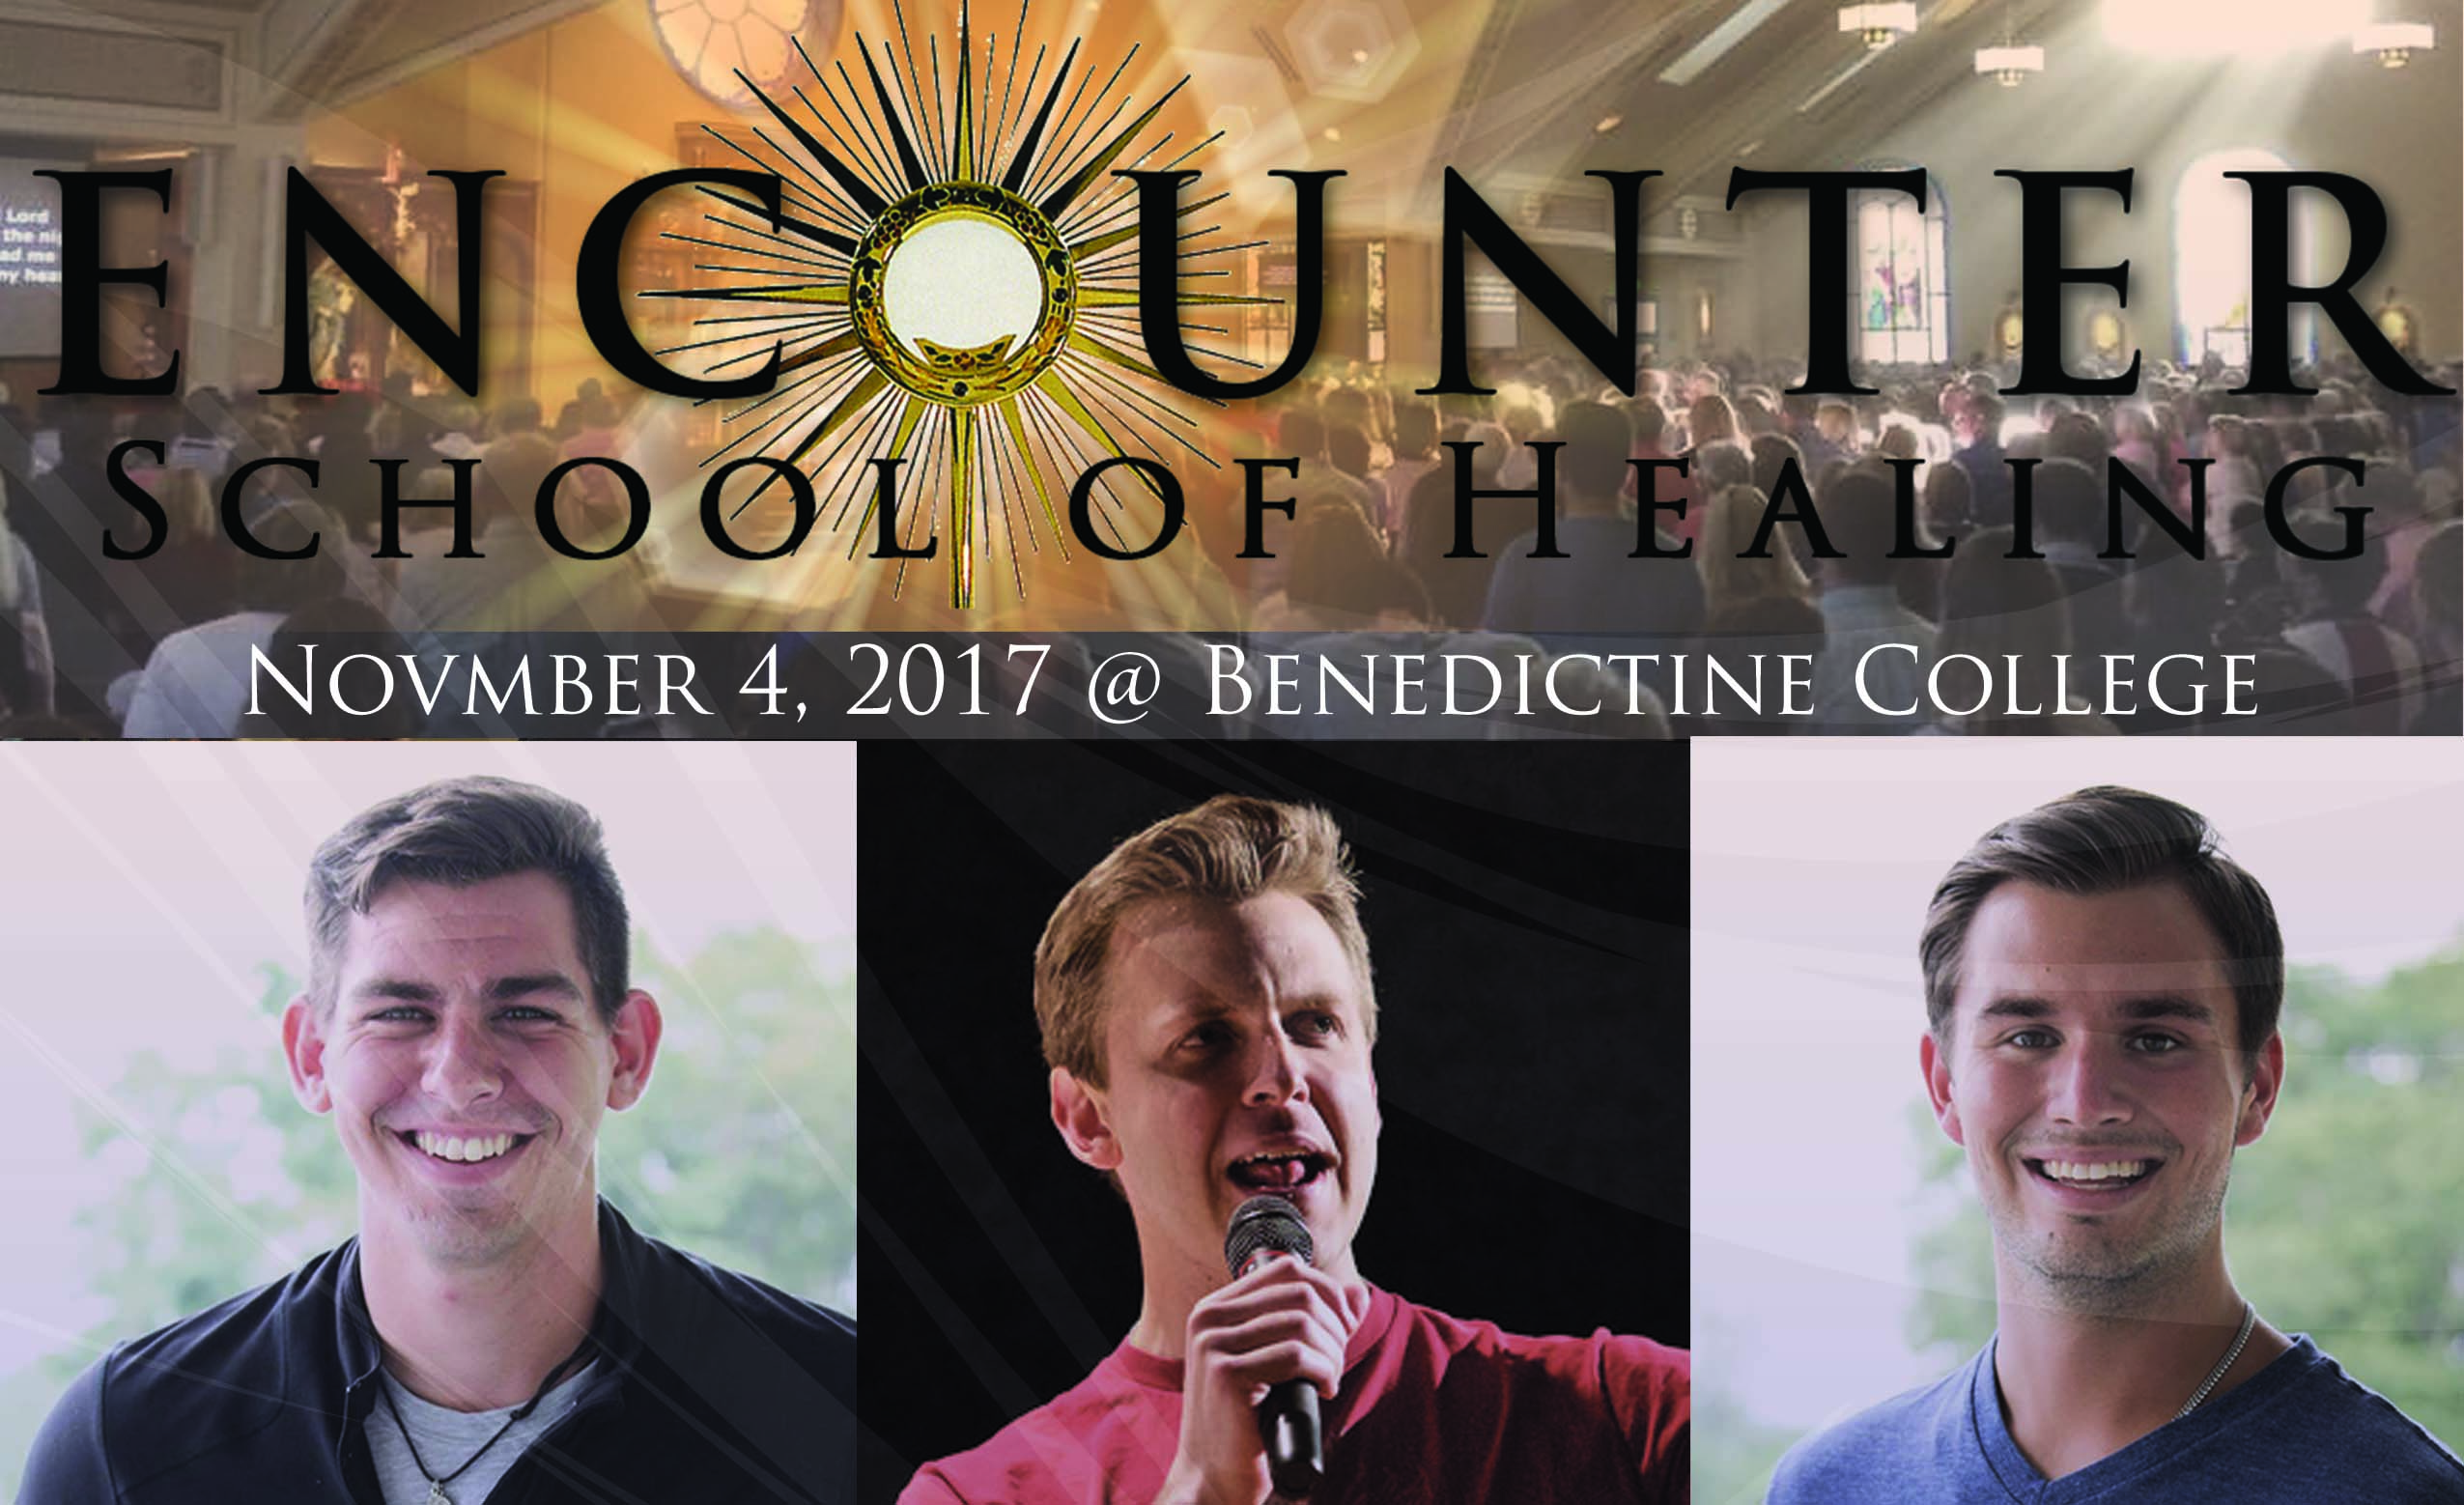 School of Healing - Benedictine College